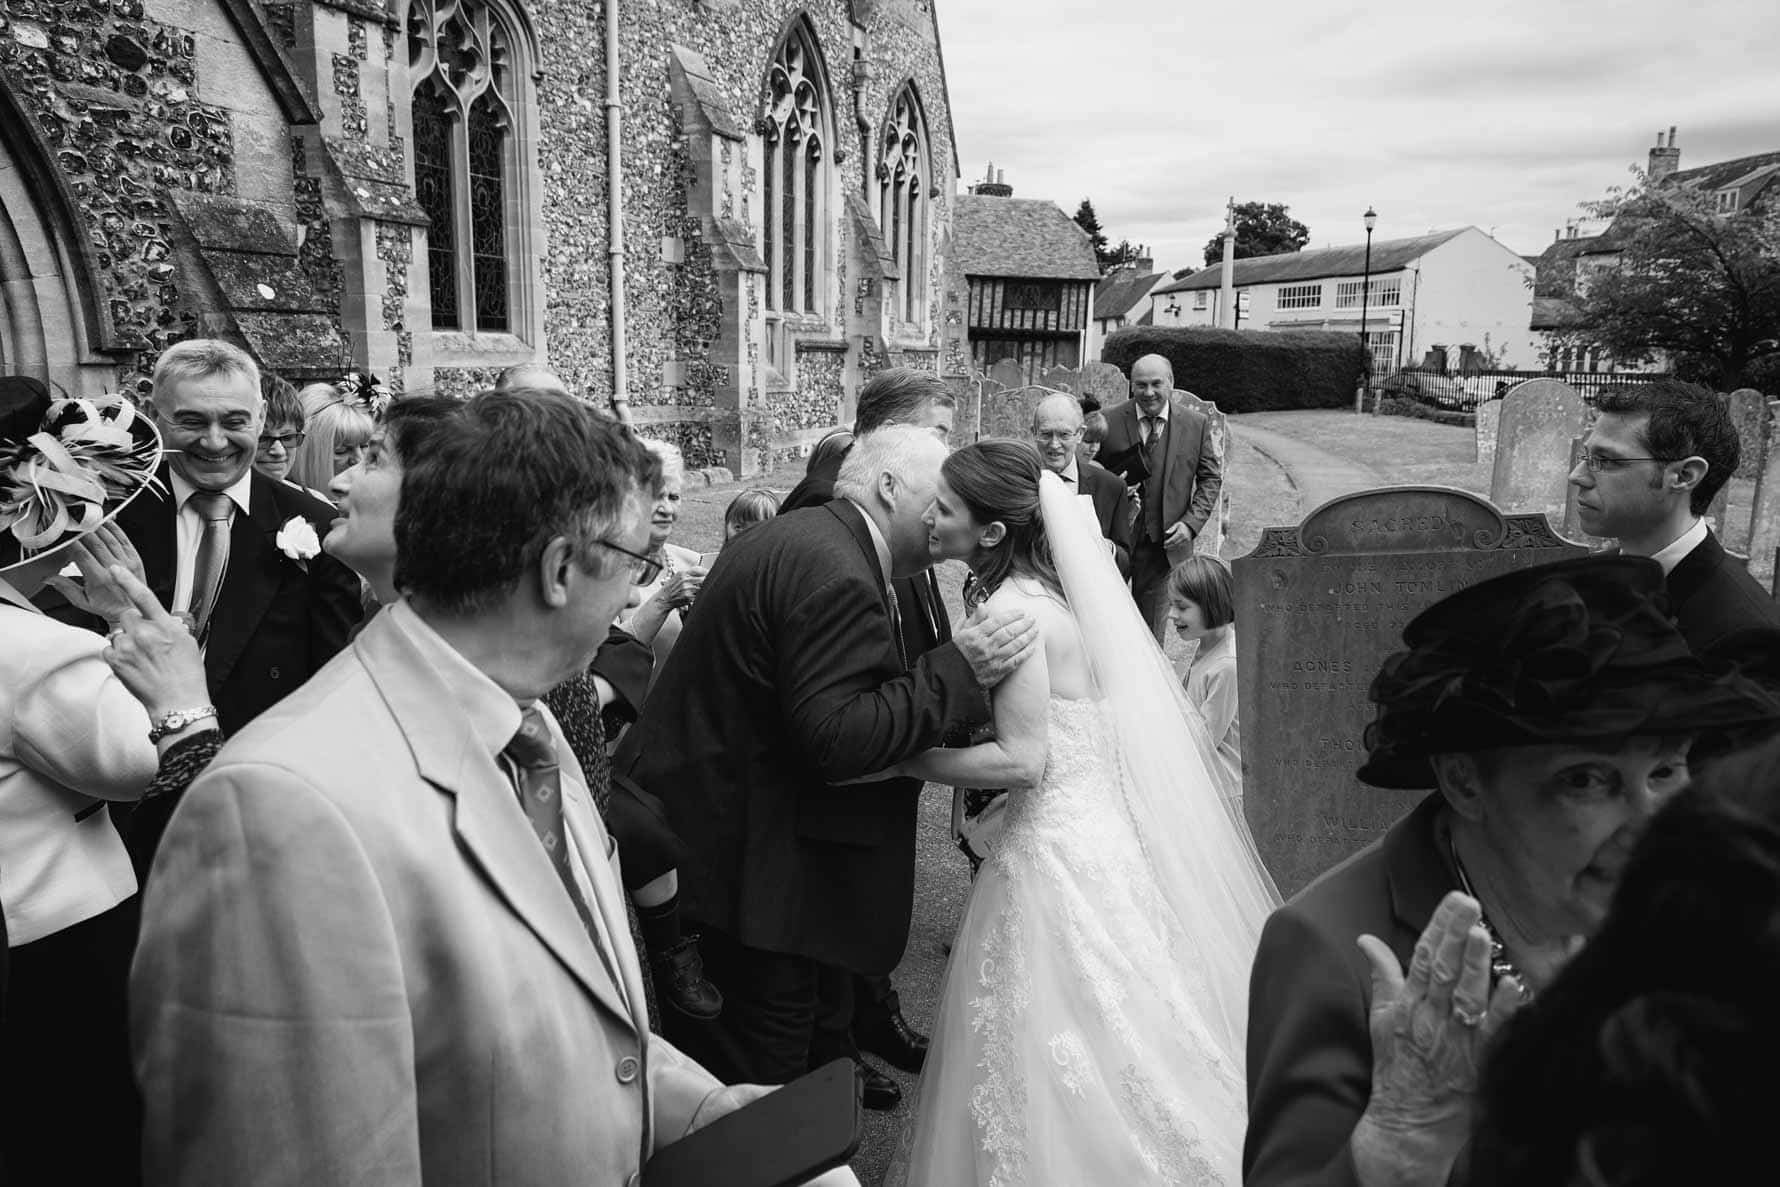 After the wedding at St Mary's Church, Welwyn in Hertfordshire